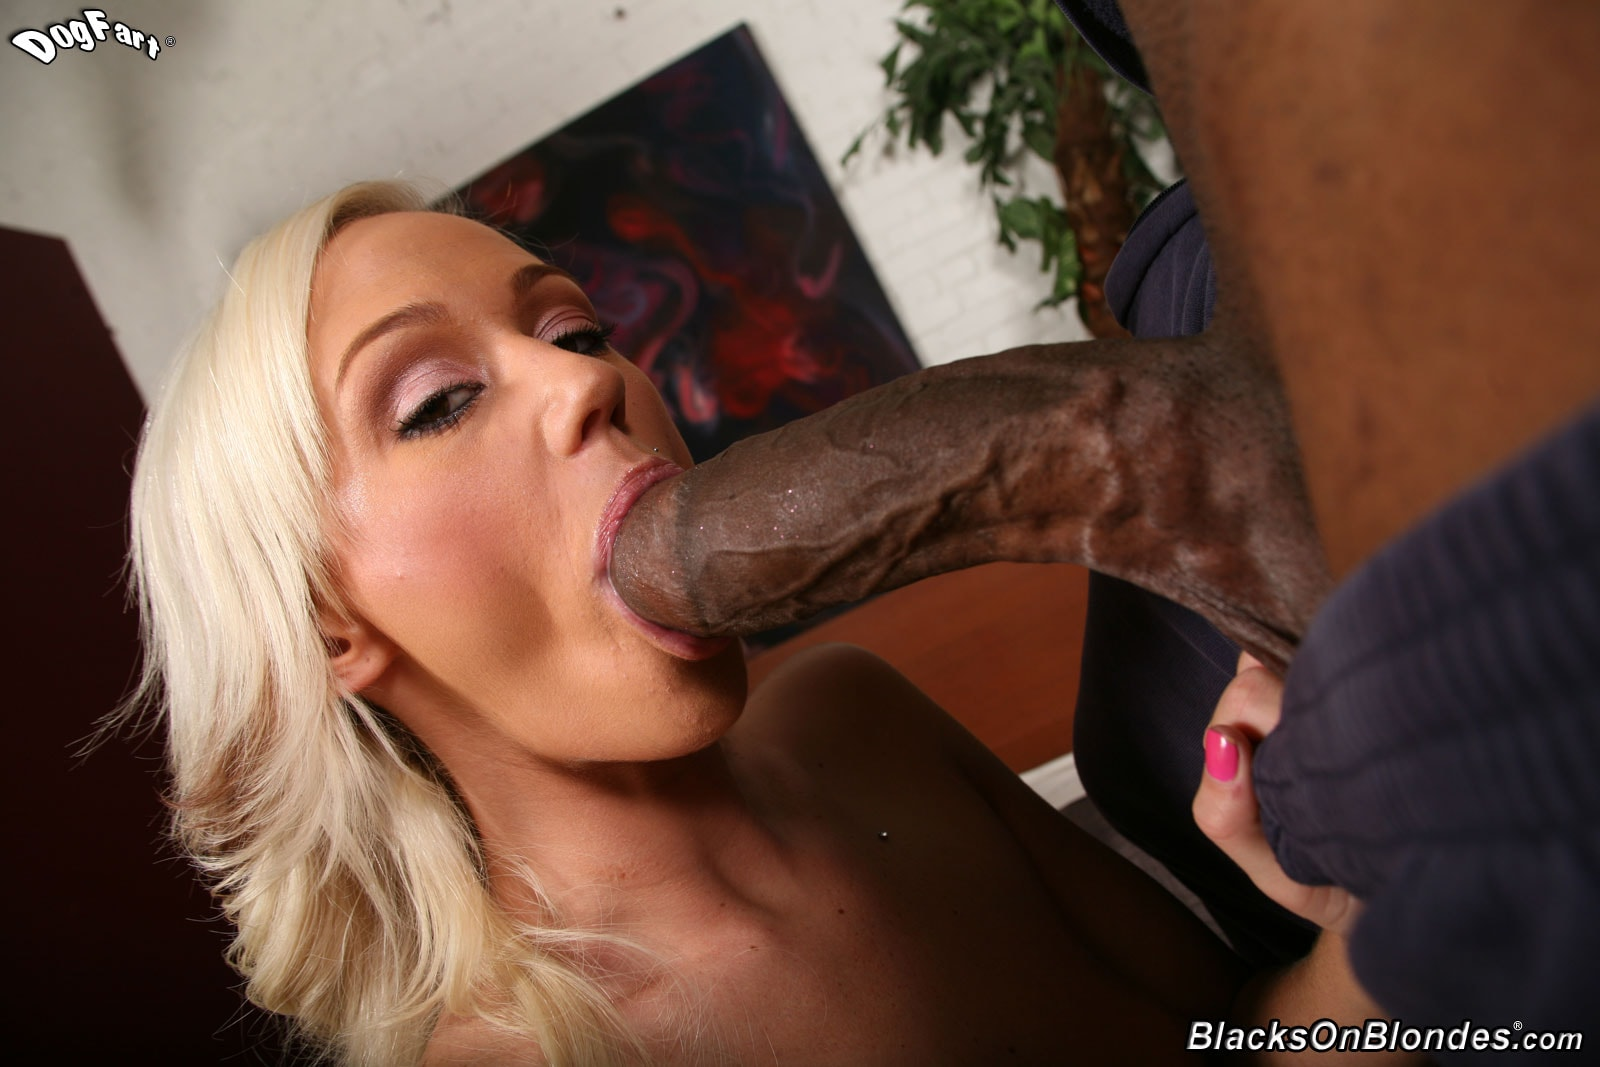 BIG ASS FUCKED BY HUGE BLACK DICK